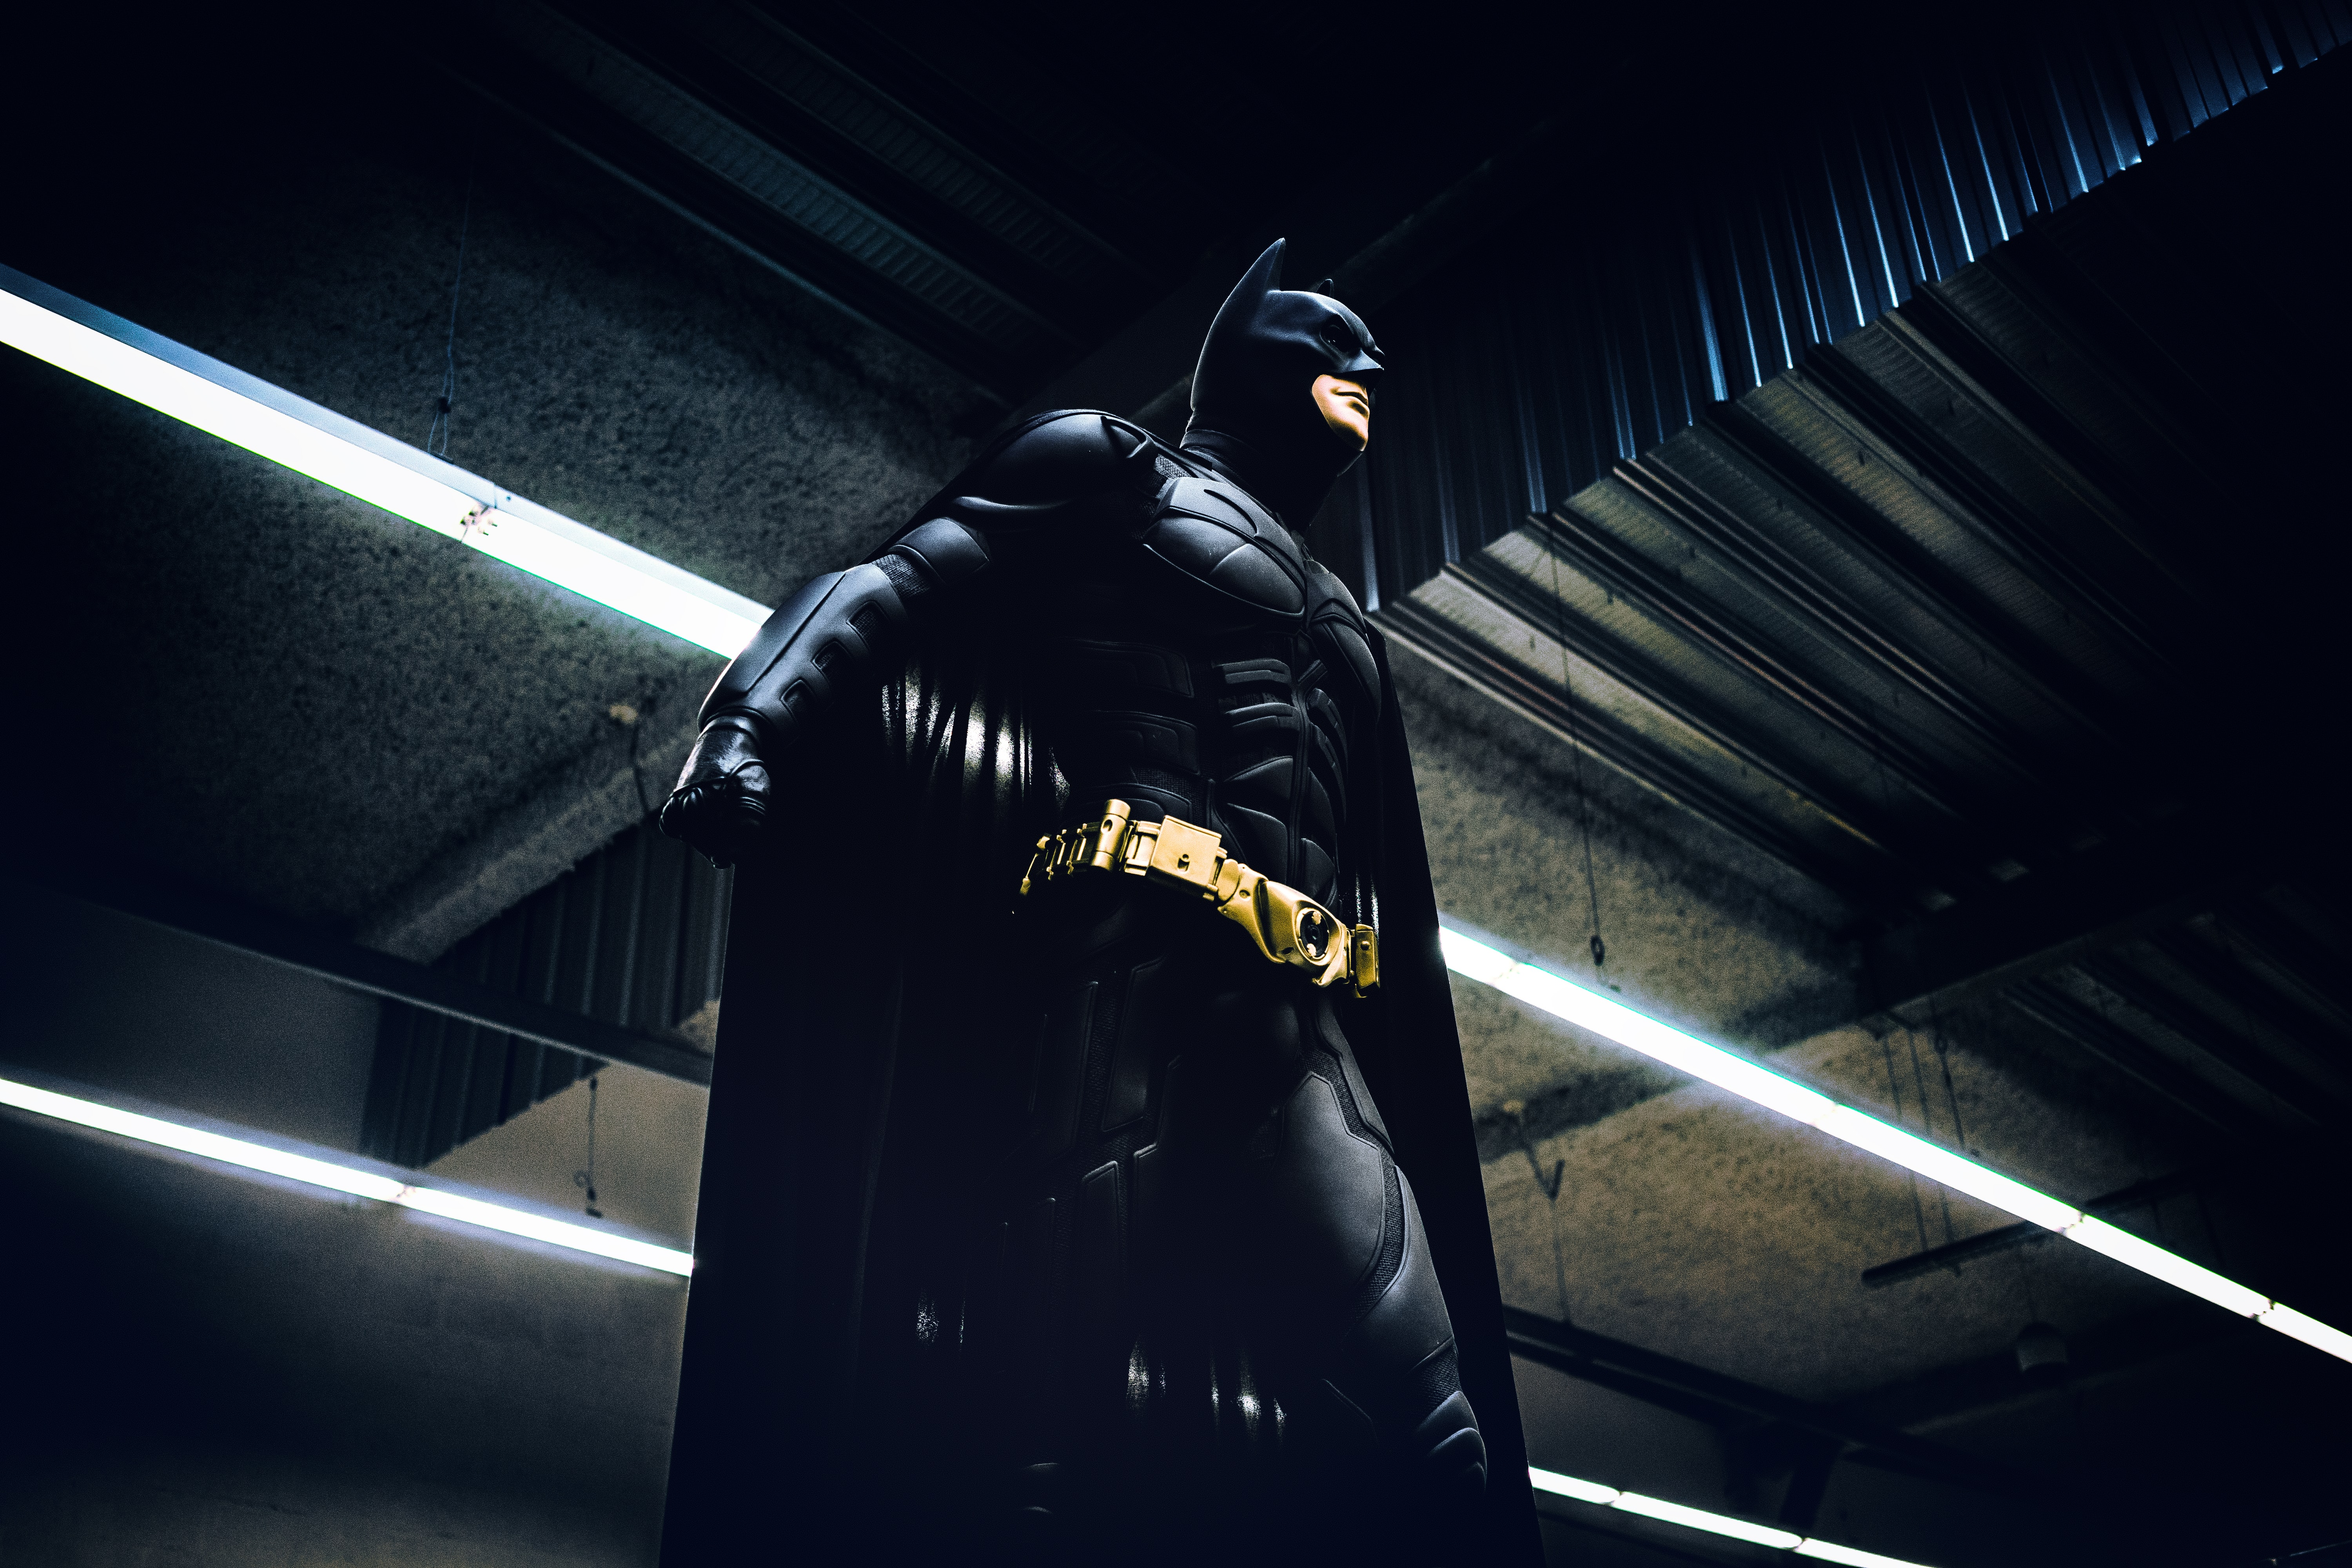 500 Superhero Pictures Hd Download Free Images On Unsplash